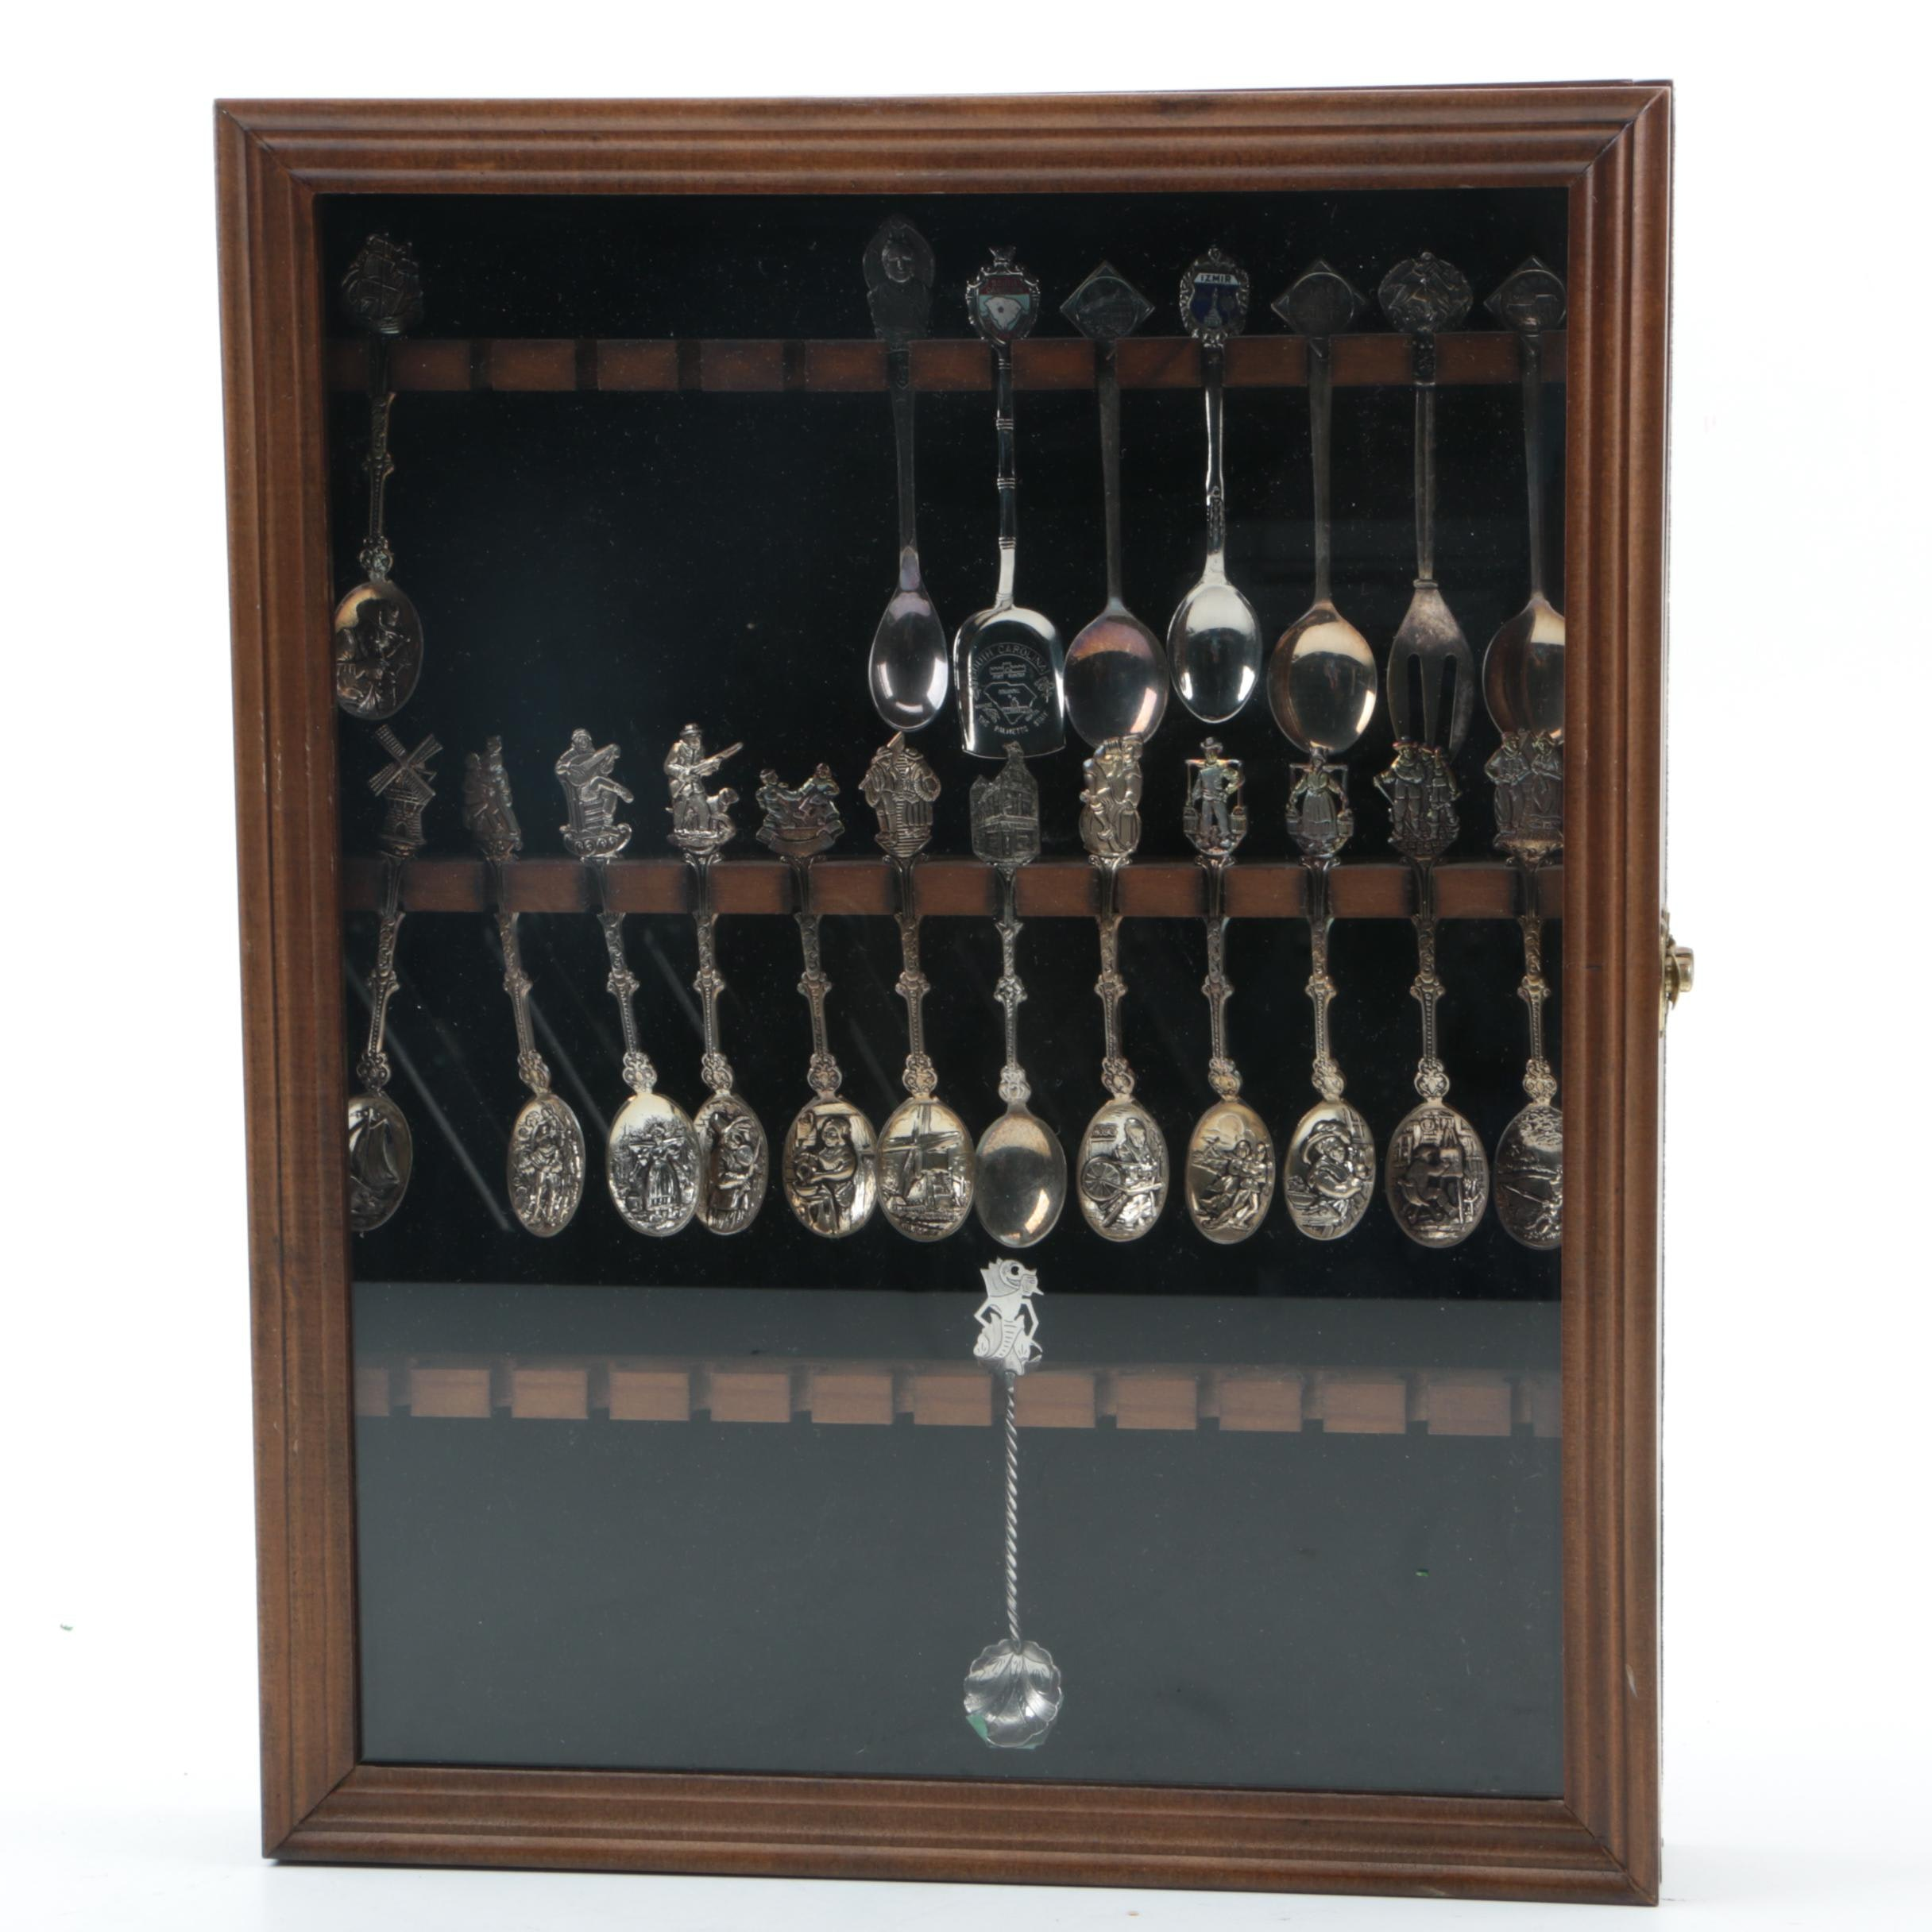 Collection of Silver Plate Souvenir Spoons and 800 Silver Spoon in Wooden Case